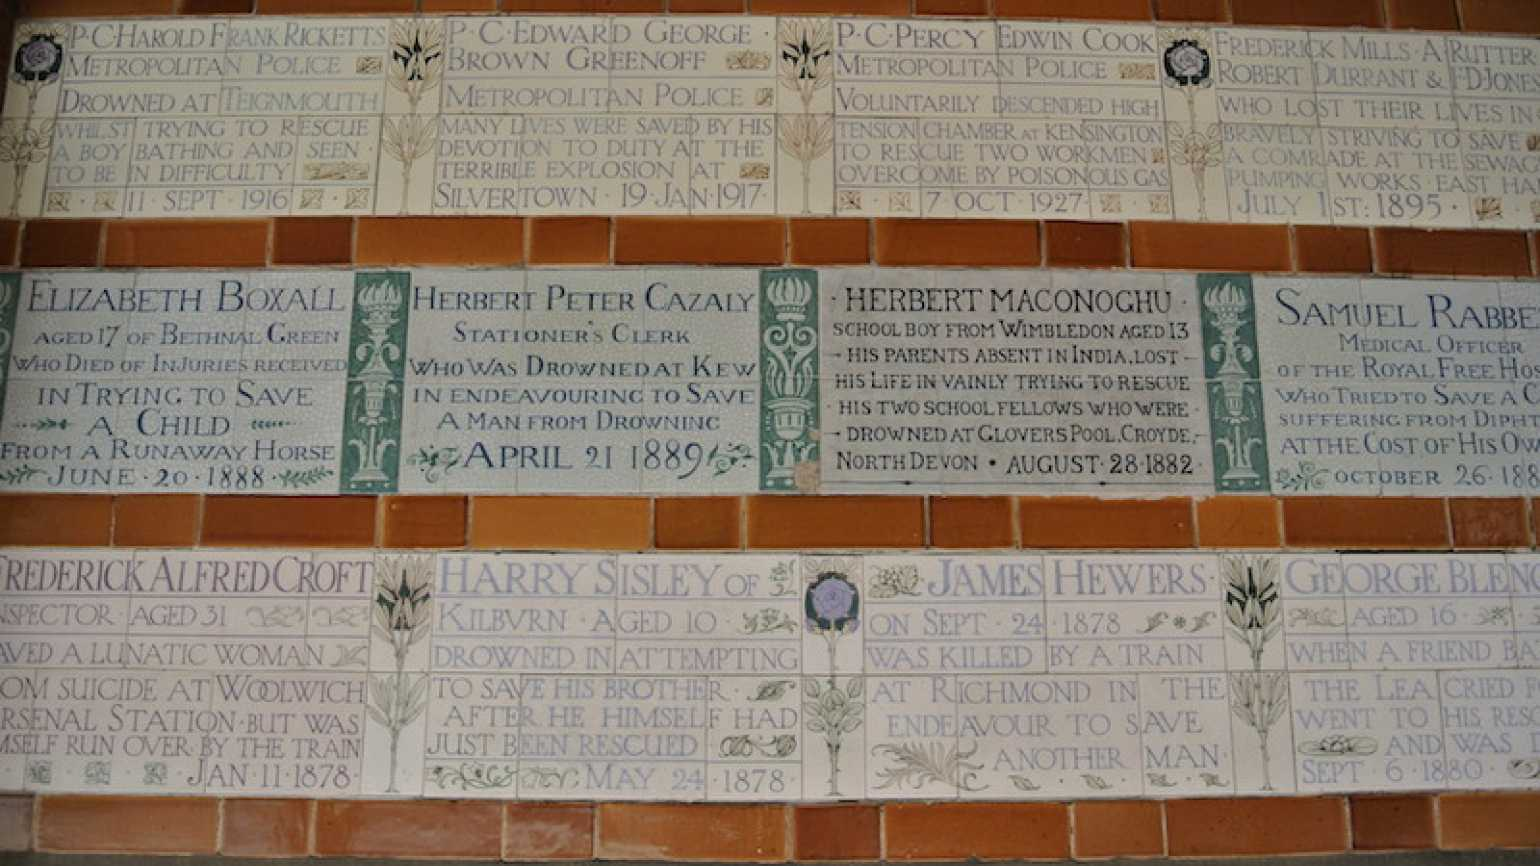 Wall of memorial plaques at Postman's Park in London.